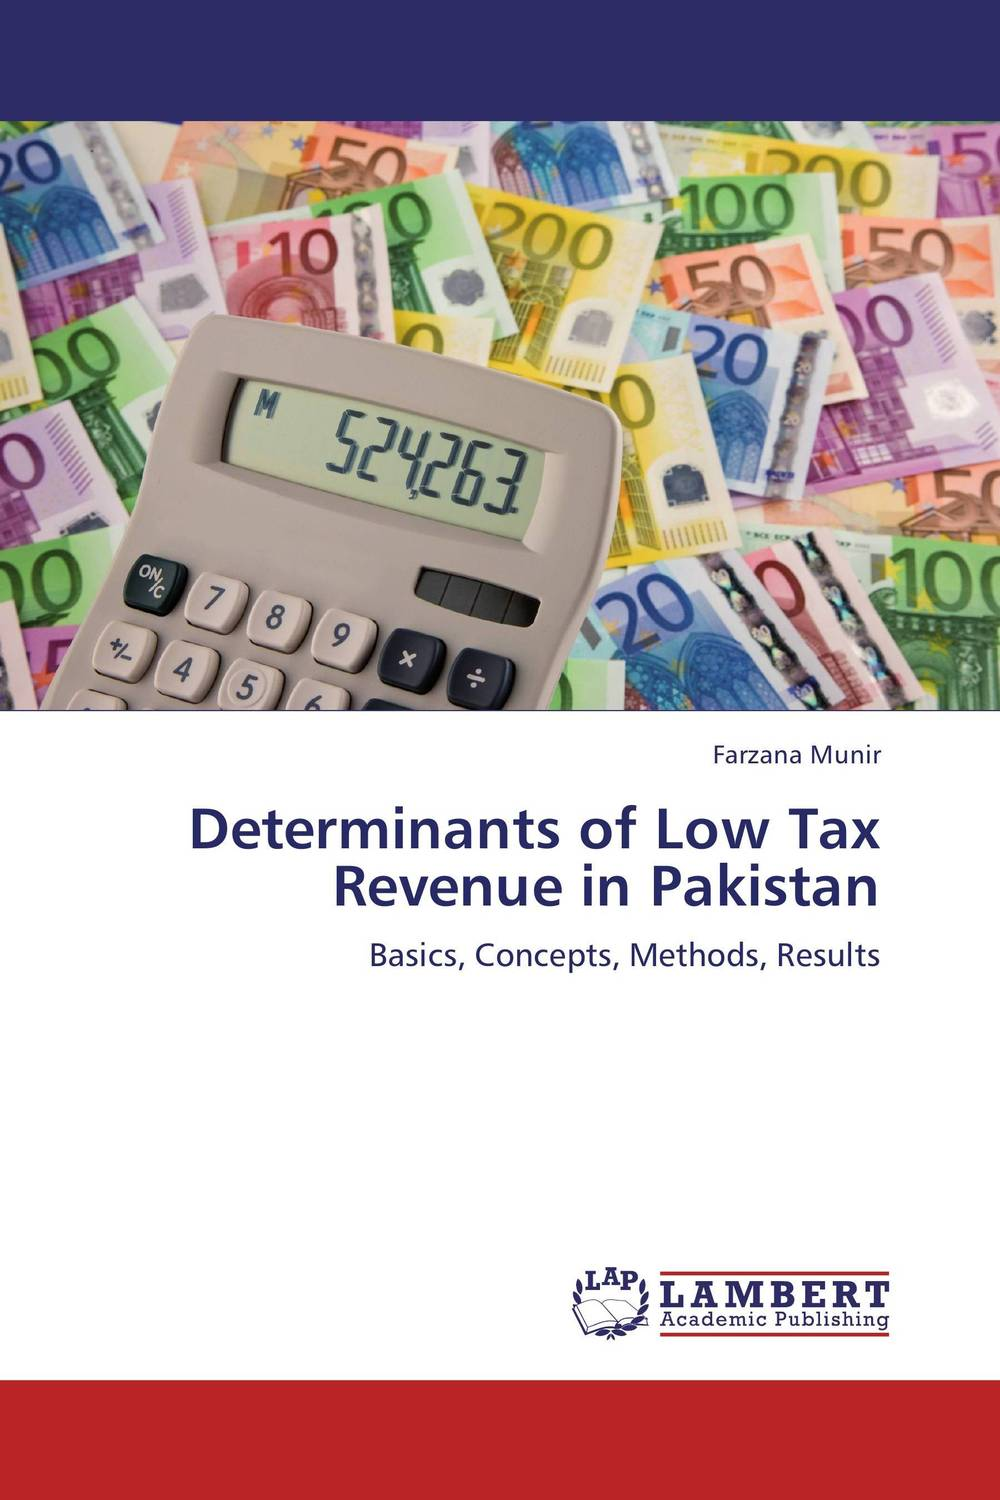 Determinants of Low Tax Revenue in Pakistan